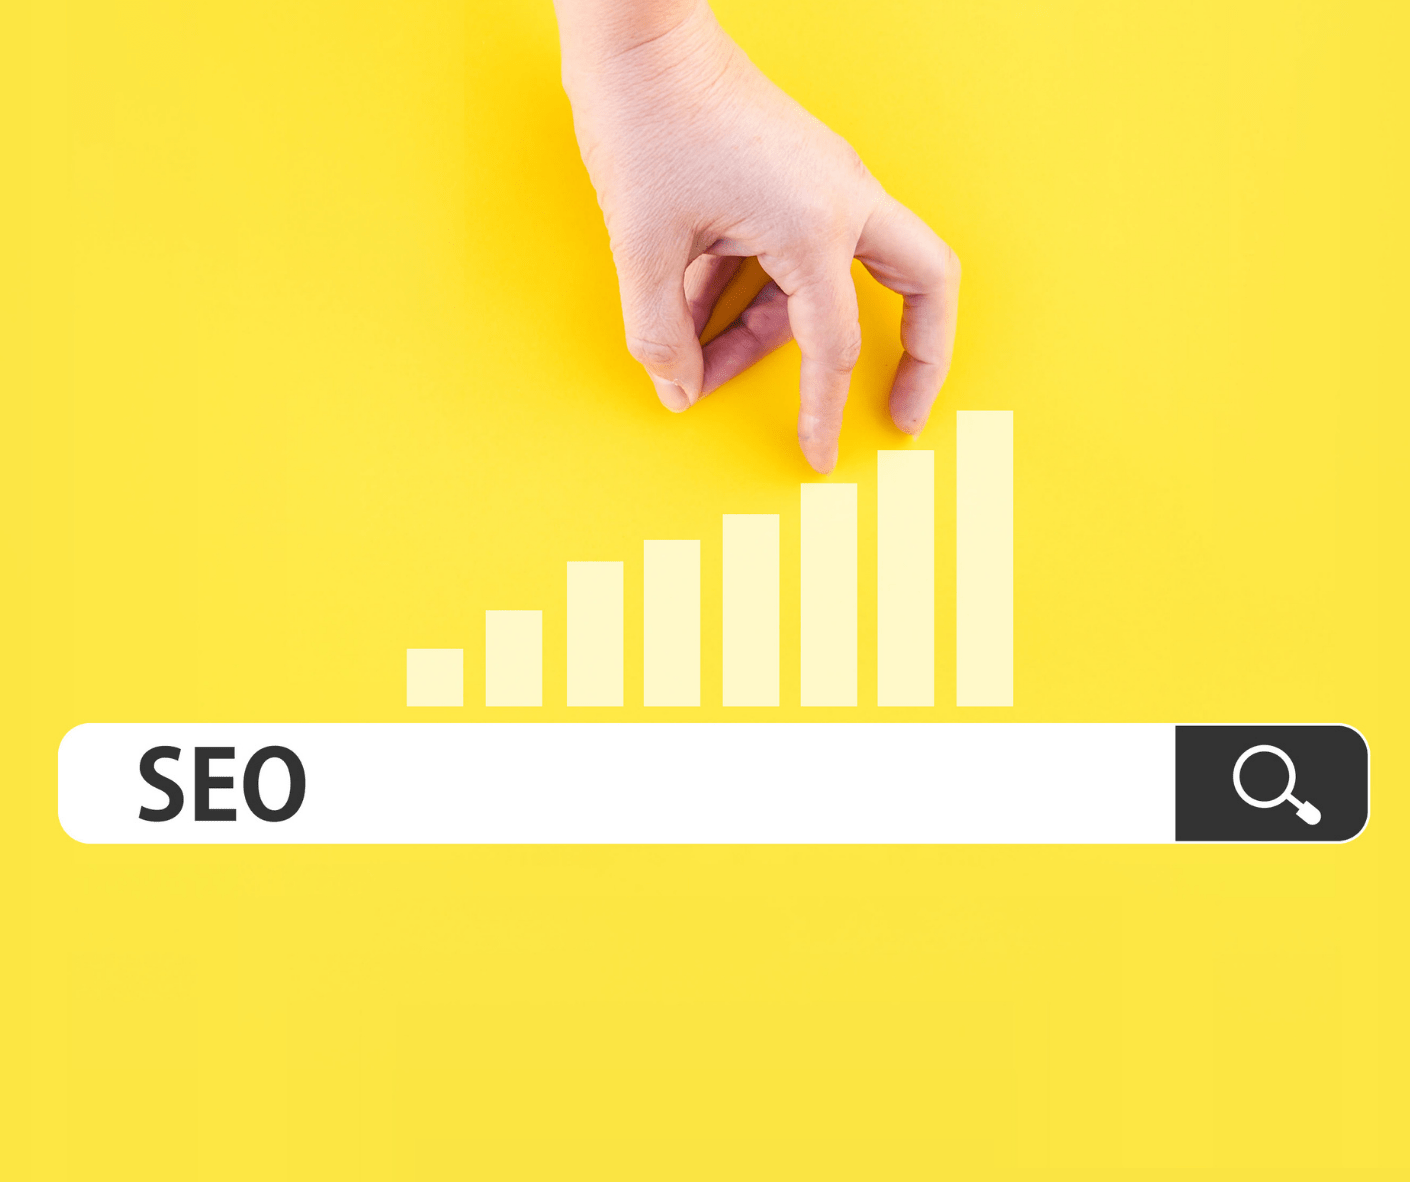 SEO Trends to Keep In Mind for the Rest of 2021